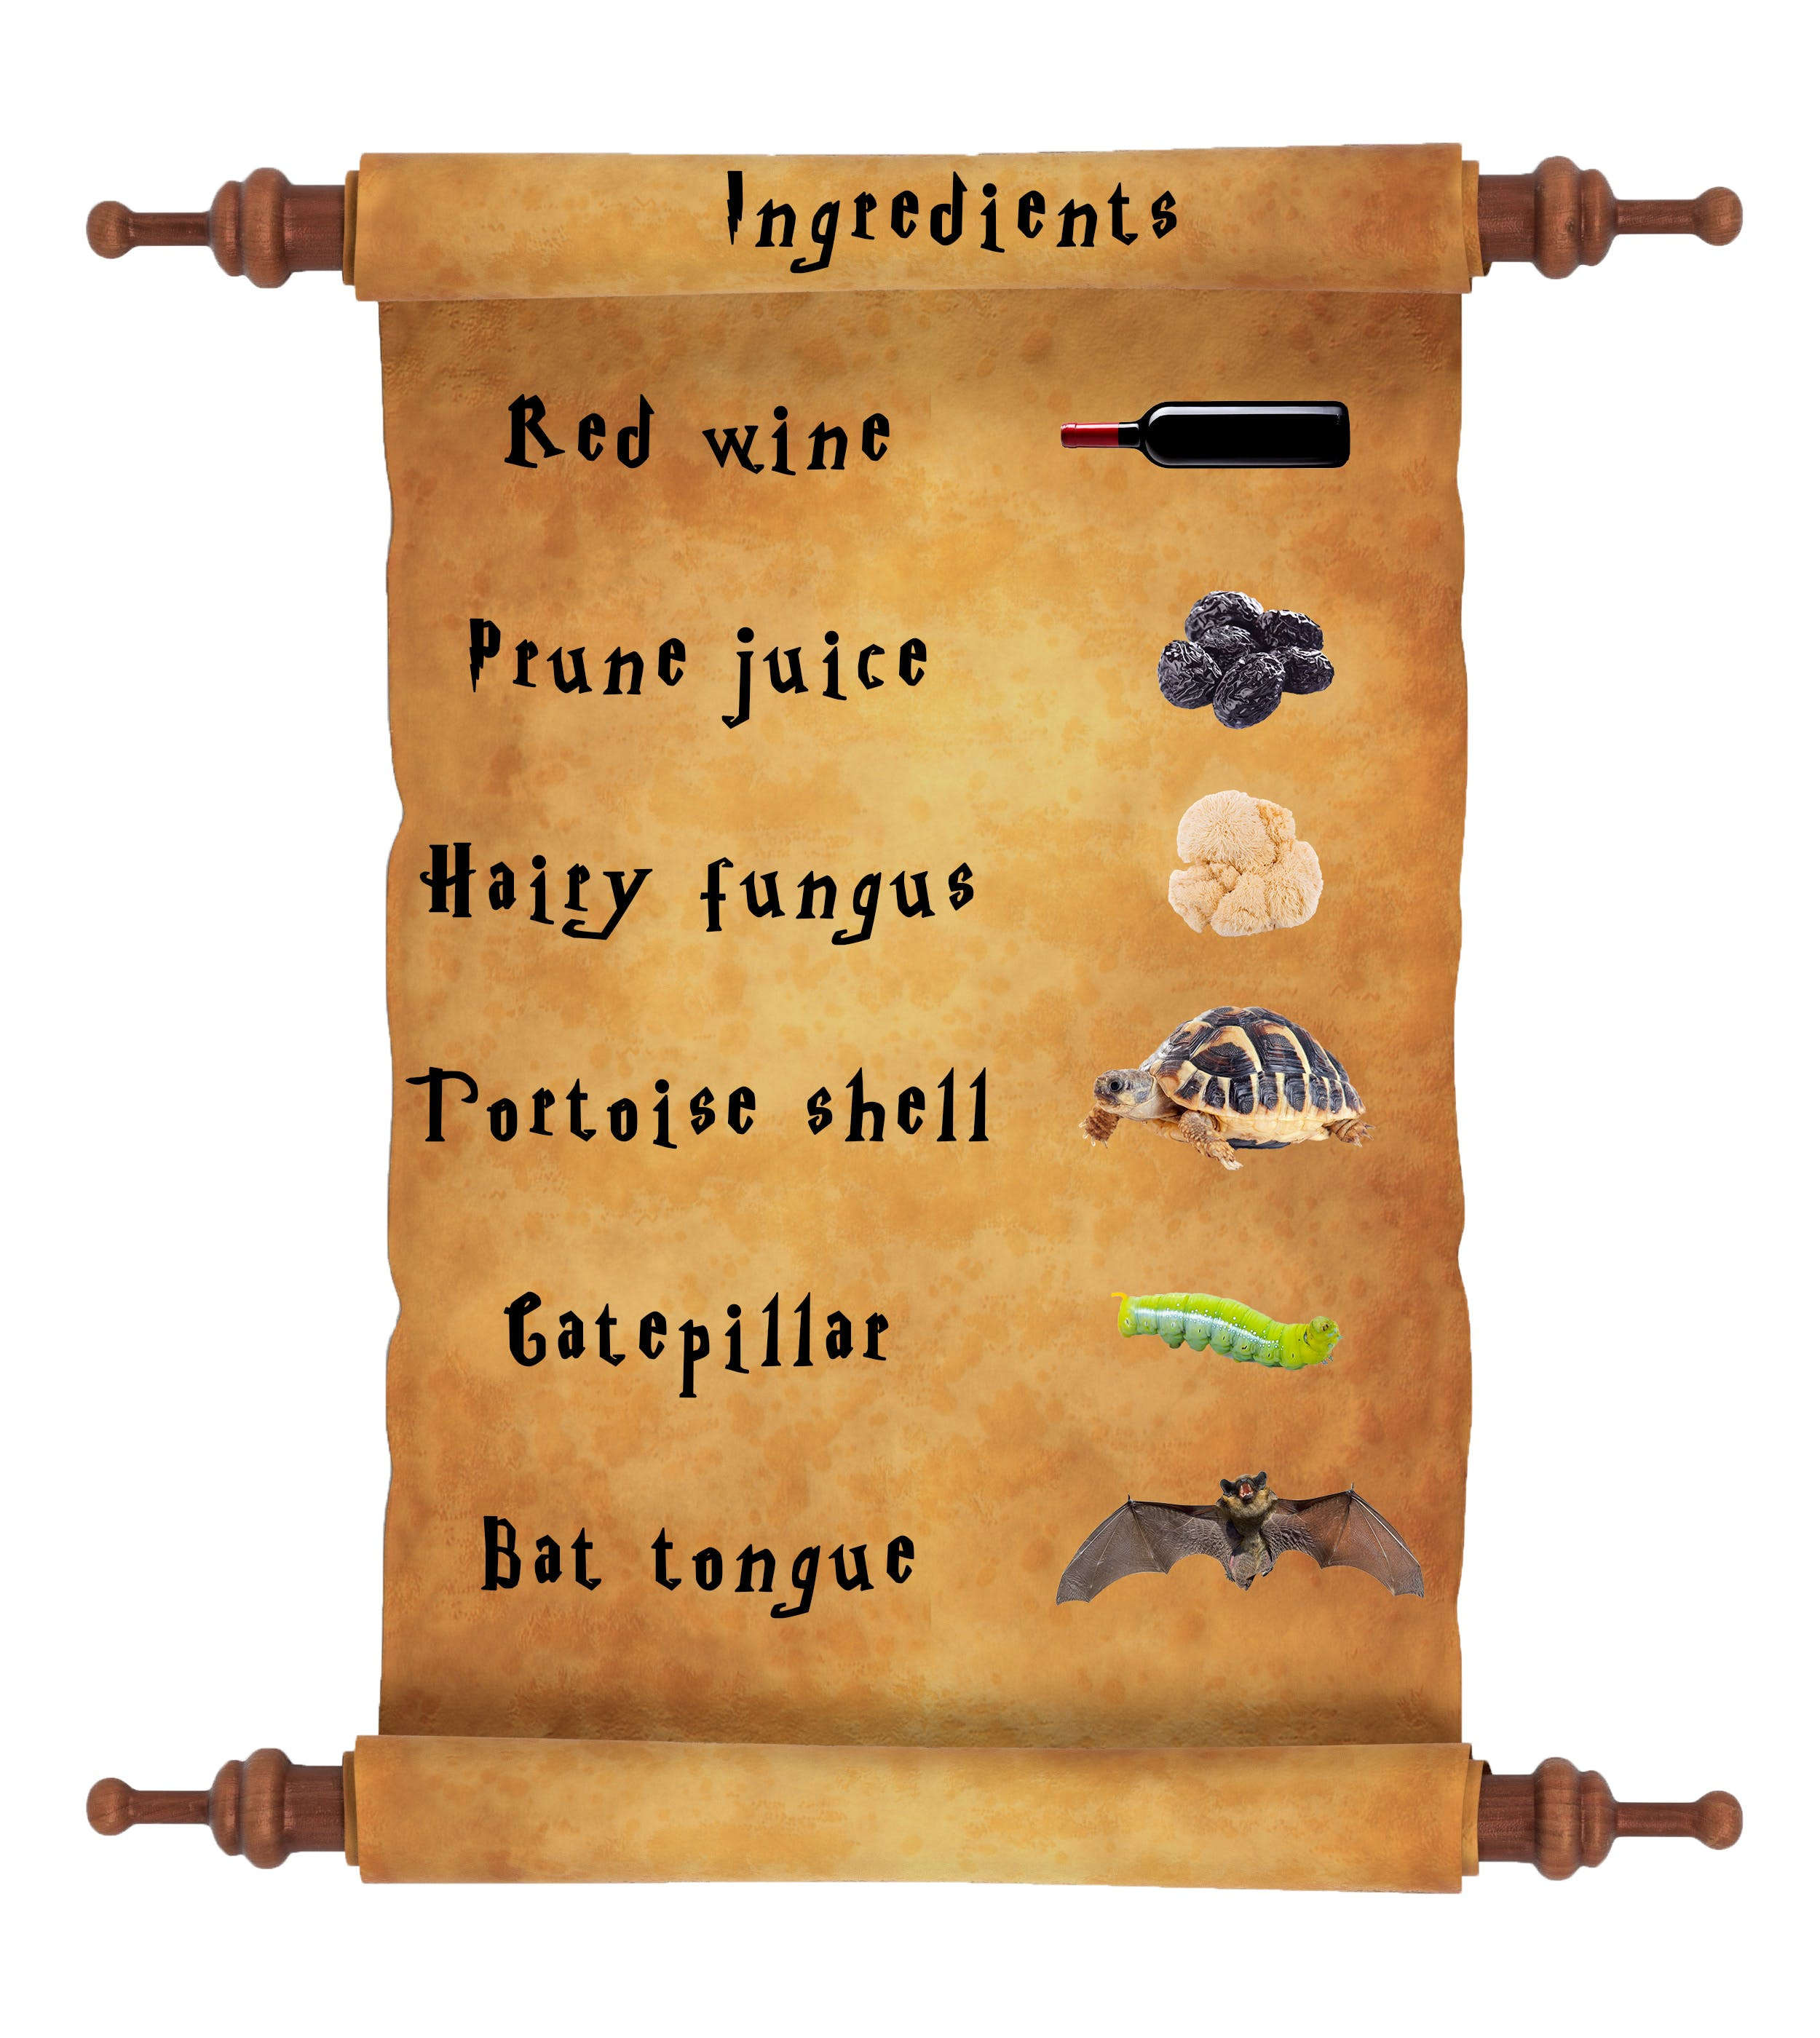 Harry Potter potions list - ageing potion ingredients